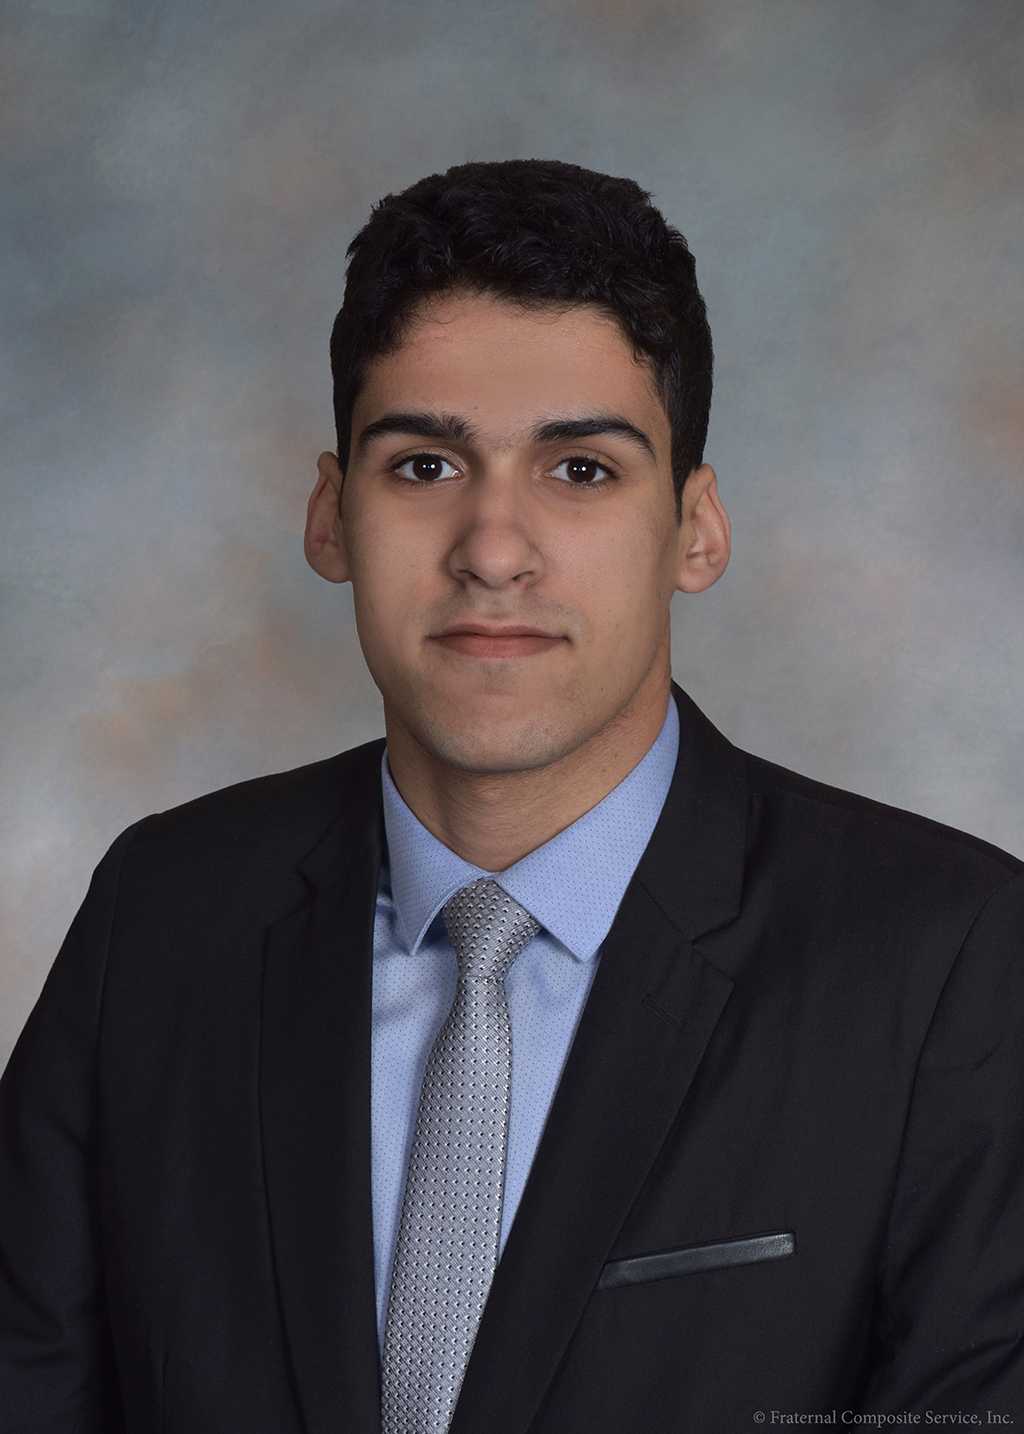 Amine Soufaih  | Class of 2022   Hometown:  Rabat, Morocco   Majoring in  M&T - Wharton: Finance, SEAS: Systems Engineering   Outlierz Ventures:  Venture Capital Summer Analyst   Groups & Societies:  Wharton Investment and Trading Group, Joseph Wharton Scholars   Interests:  Soccer, Technology, Africa